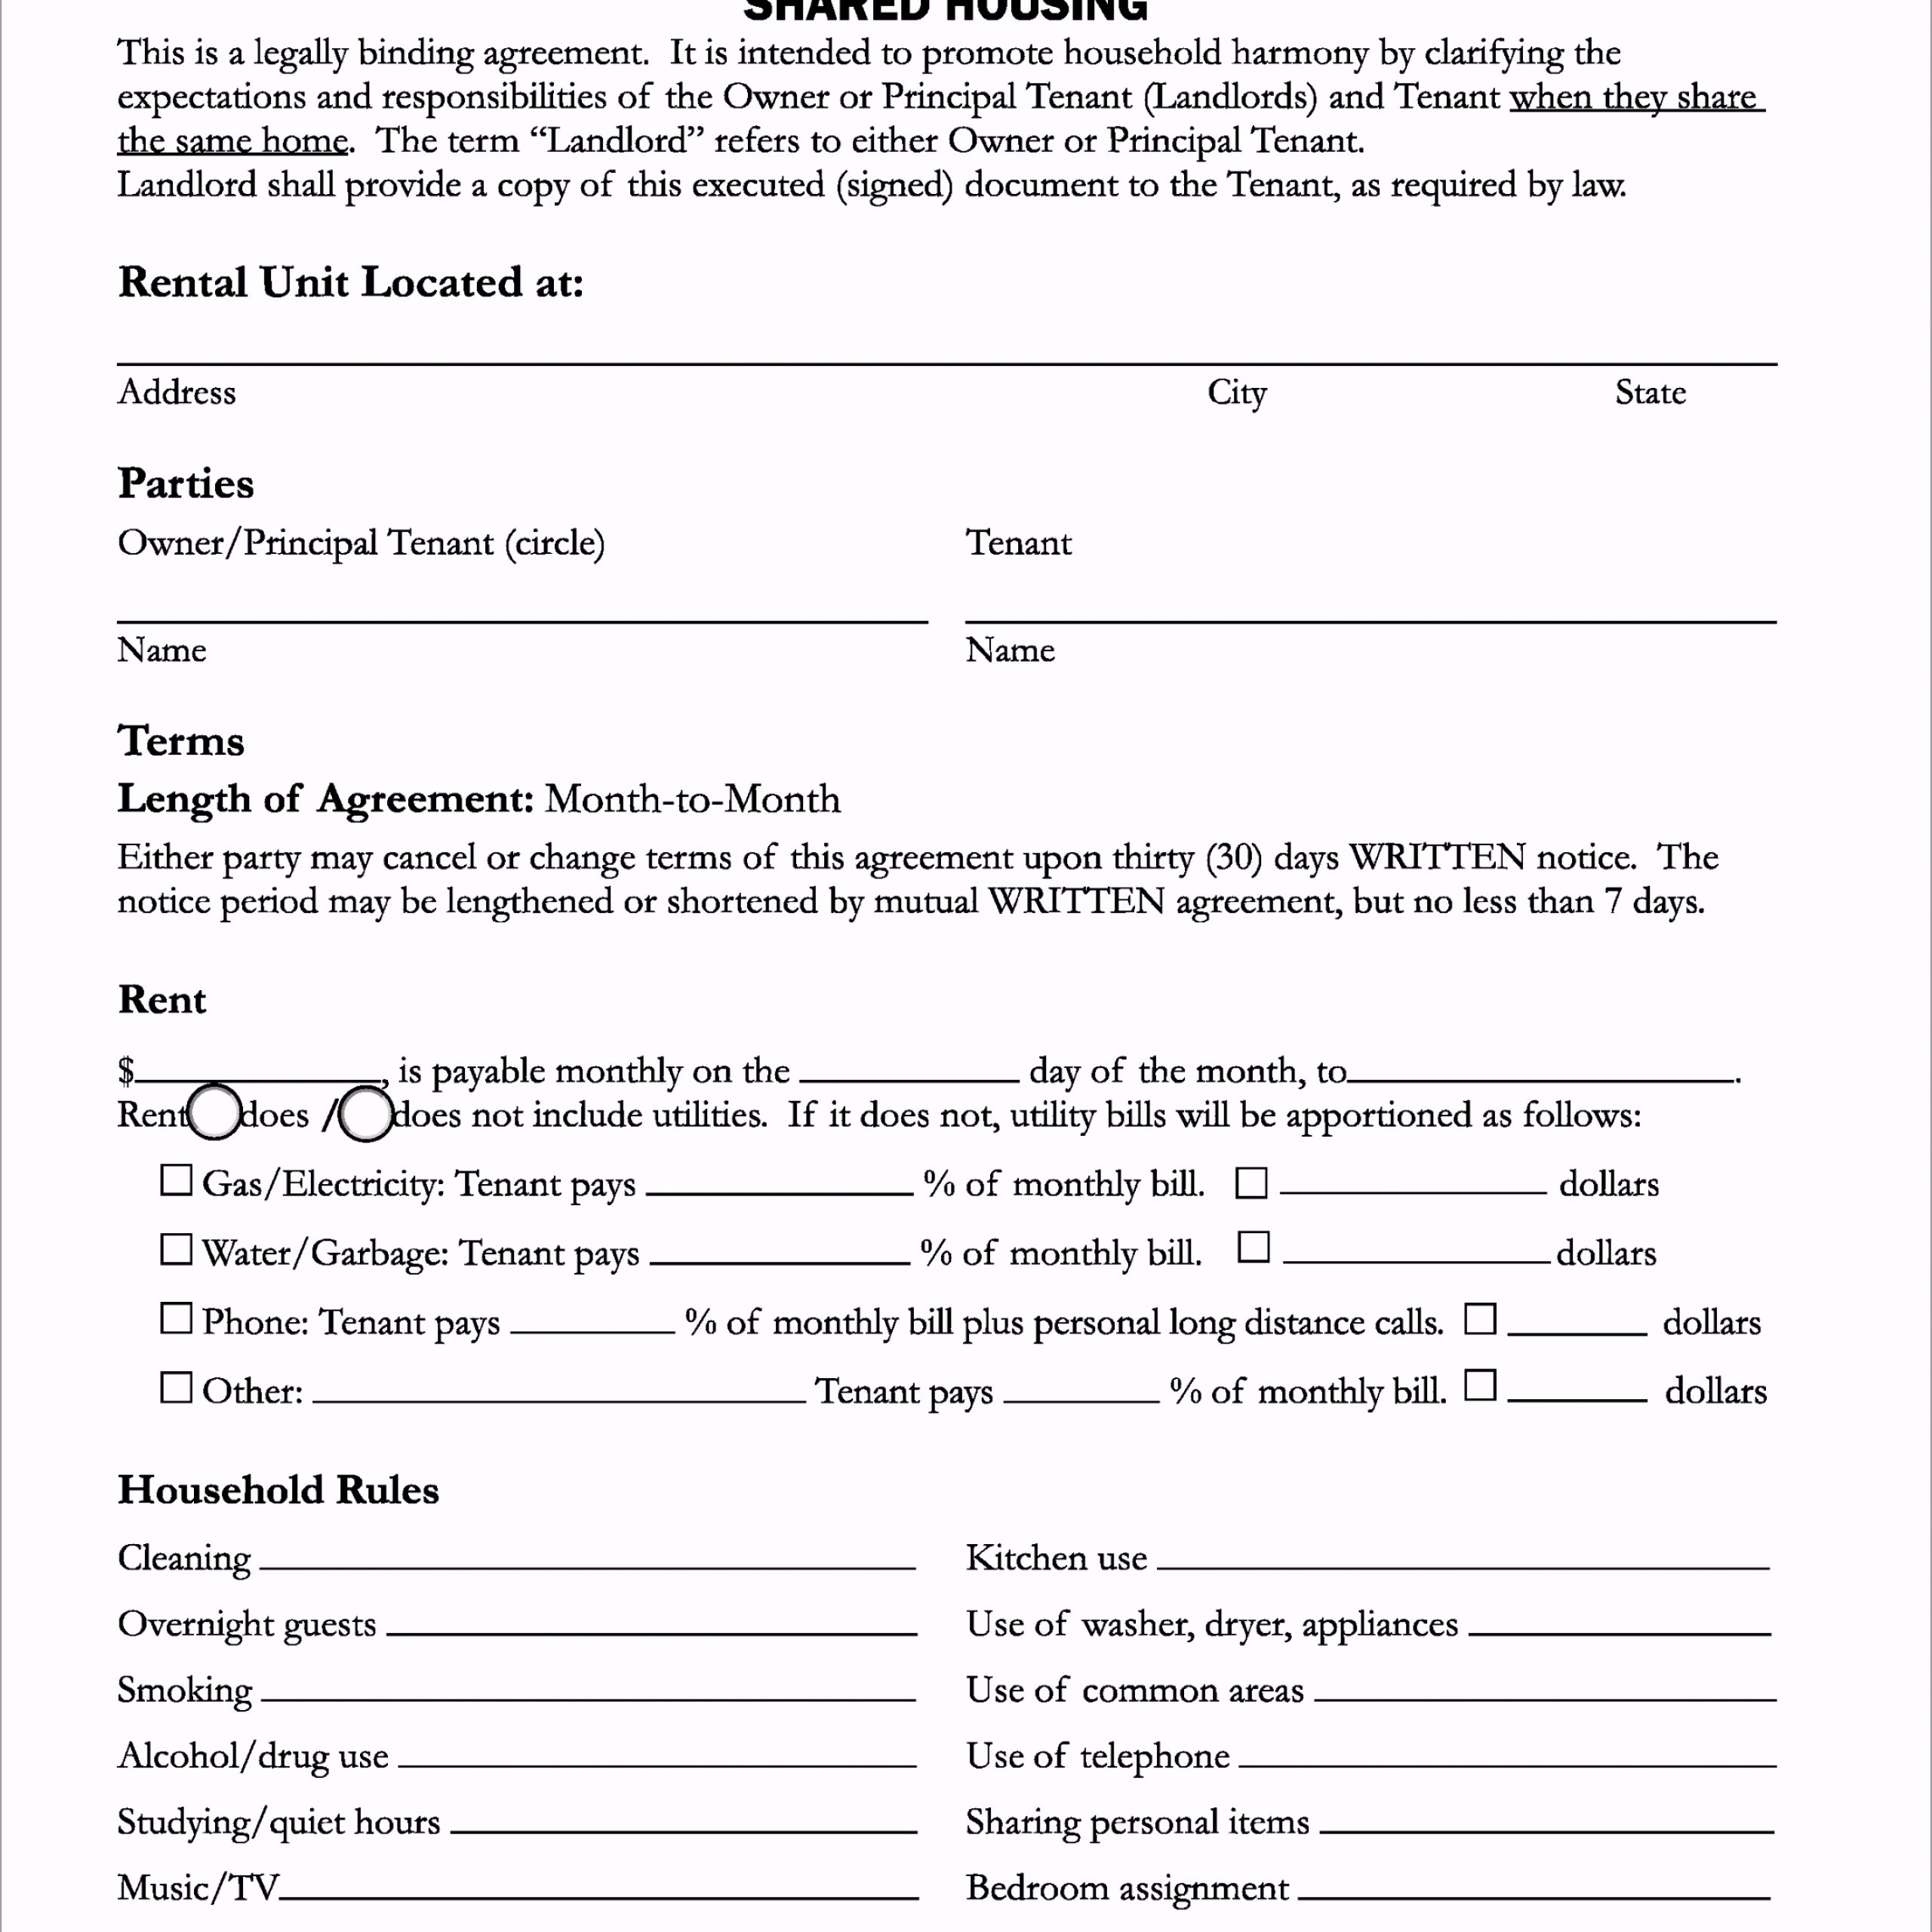 templates printable room rental agreement form and template for shared housing on santa cruz county icrwp